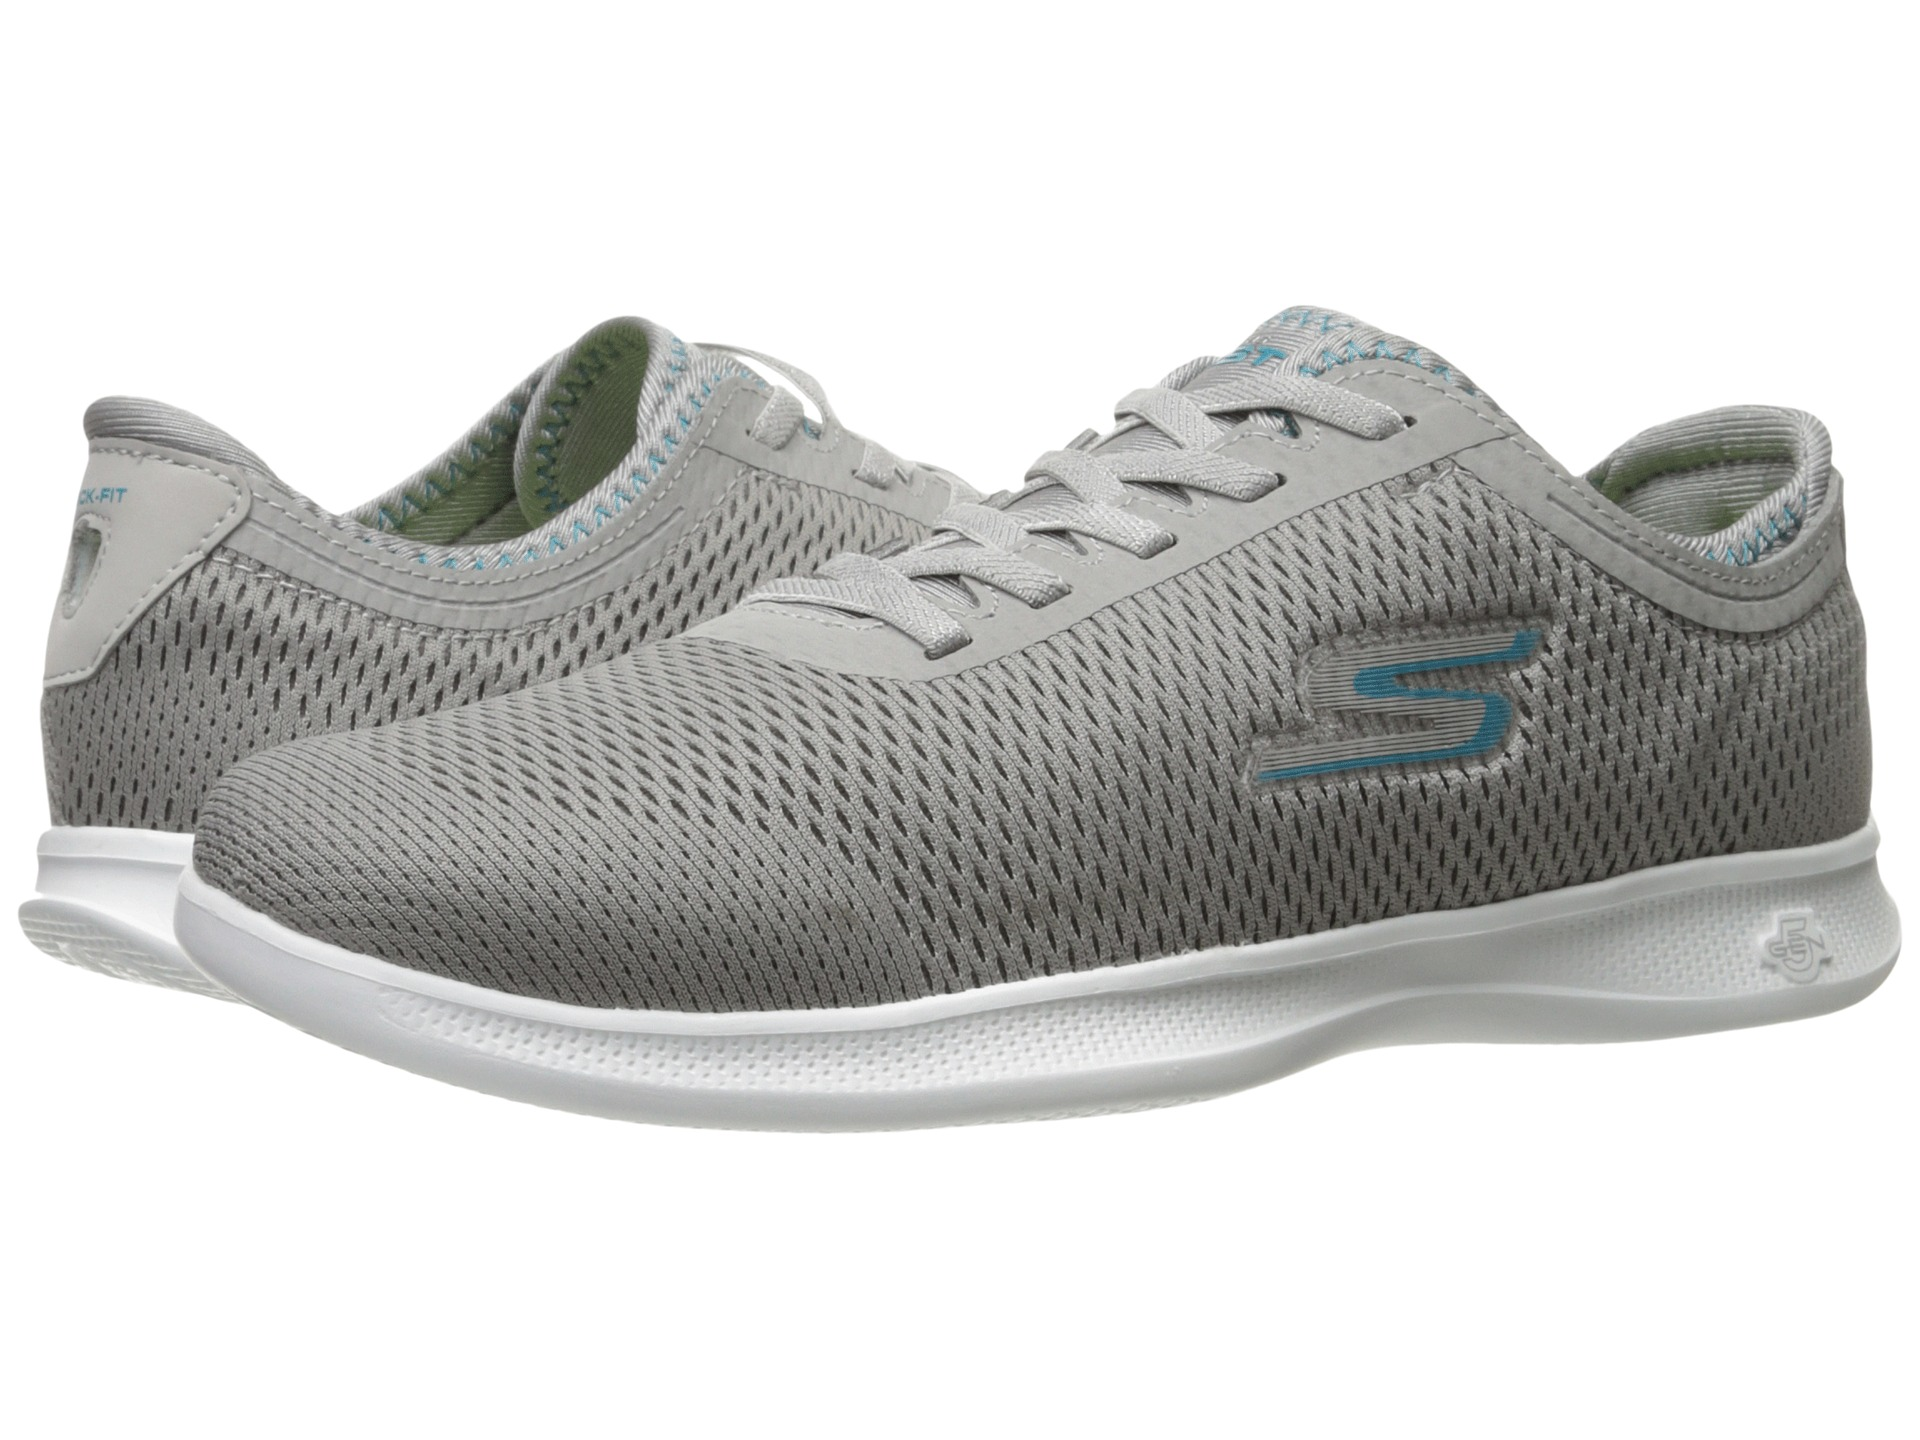 cac1f16130d0 SKECHERS Performance Go Step Lite - Persistence Gray Turquoise ...